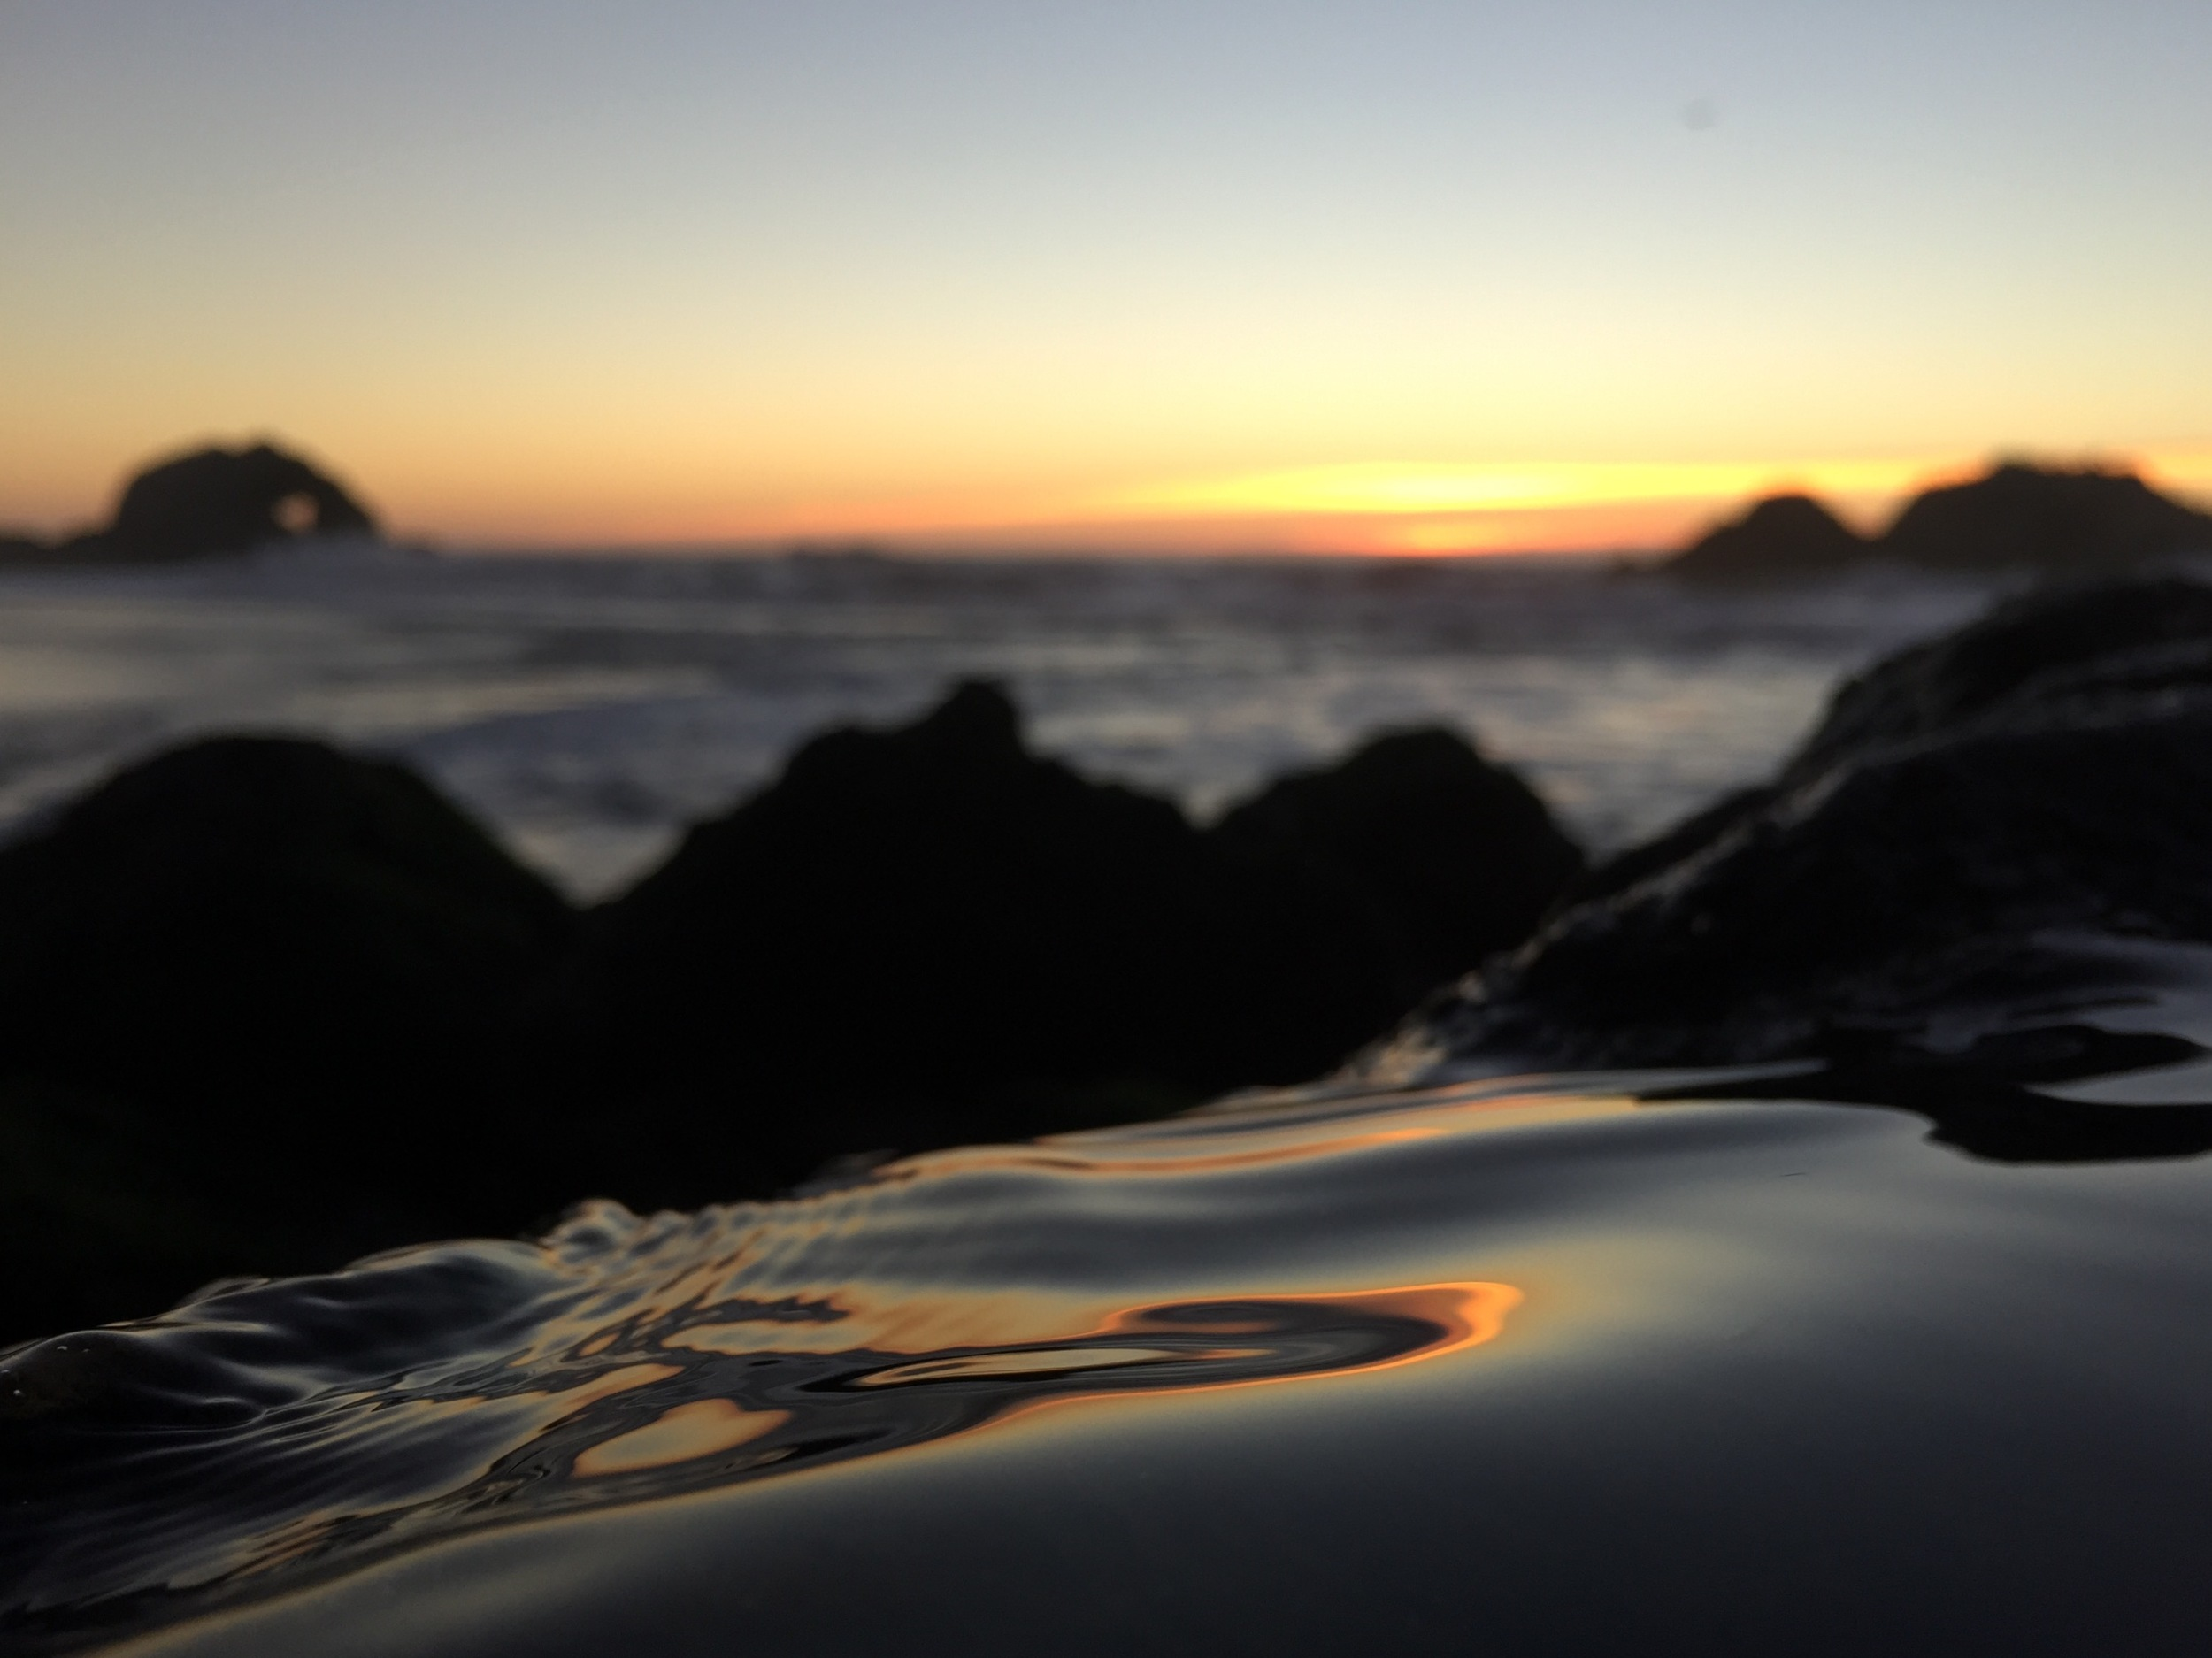 Slide Sunset, Cliff Kuhn-Lloyd (Sutro Baths, San Francisco)